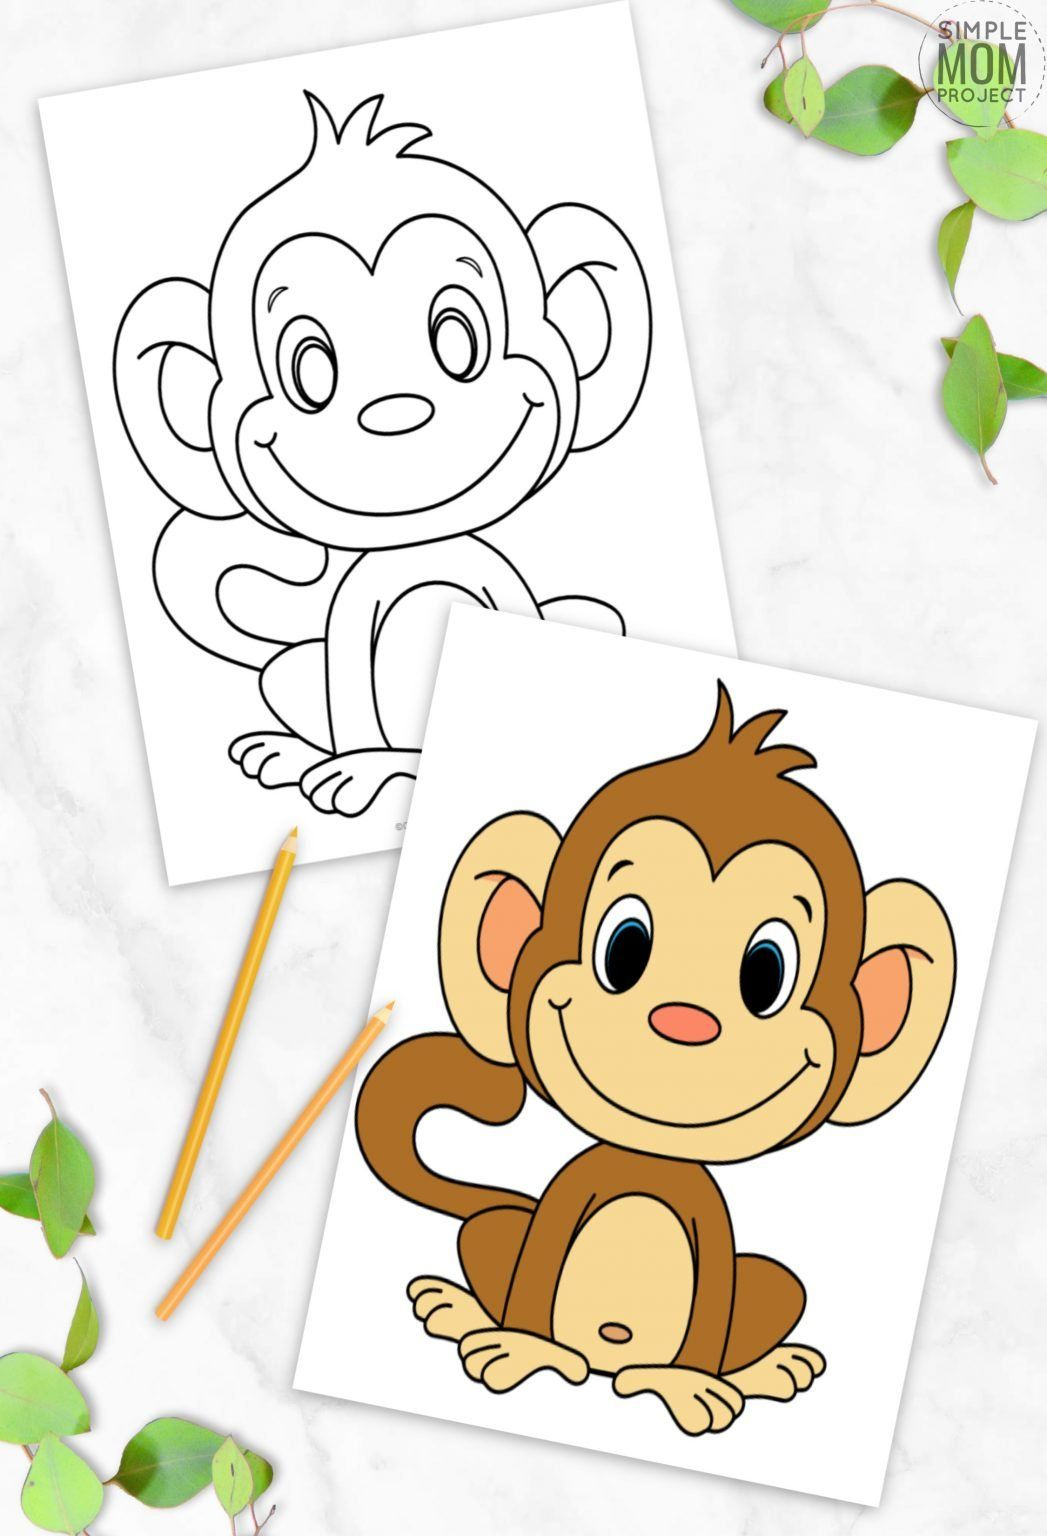 Cute Baby Monkey Coloring Page For Kids Monkey Coloring Page Monkey Coloring Pages Monkey Coloring Pages For Kids